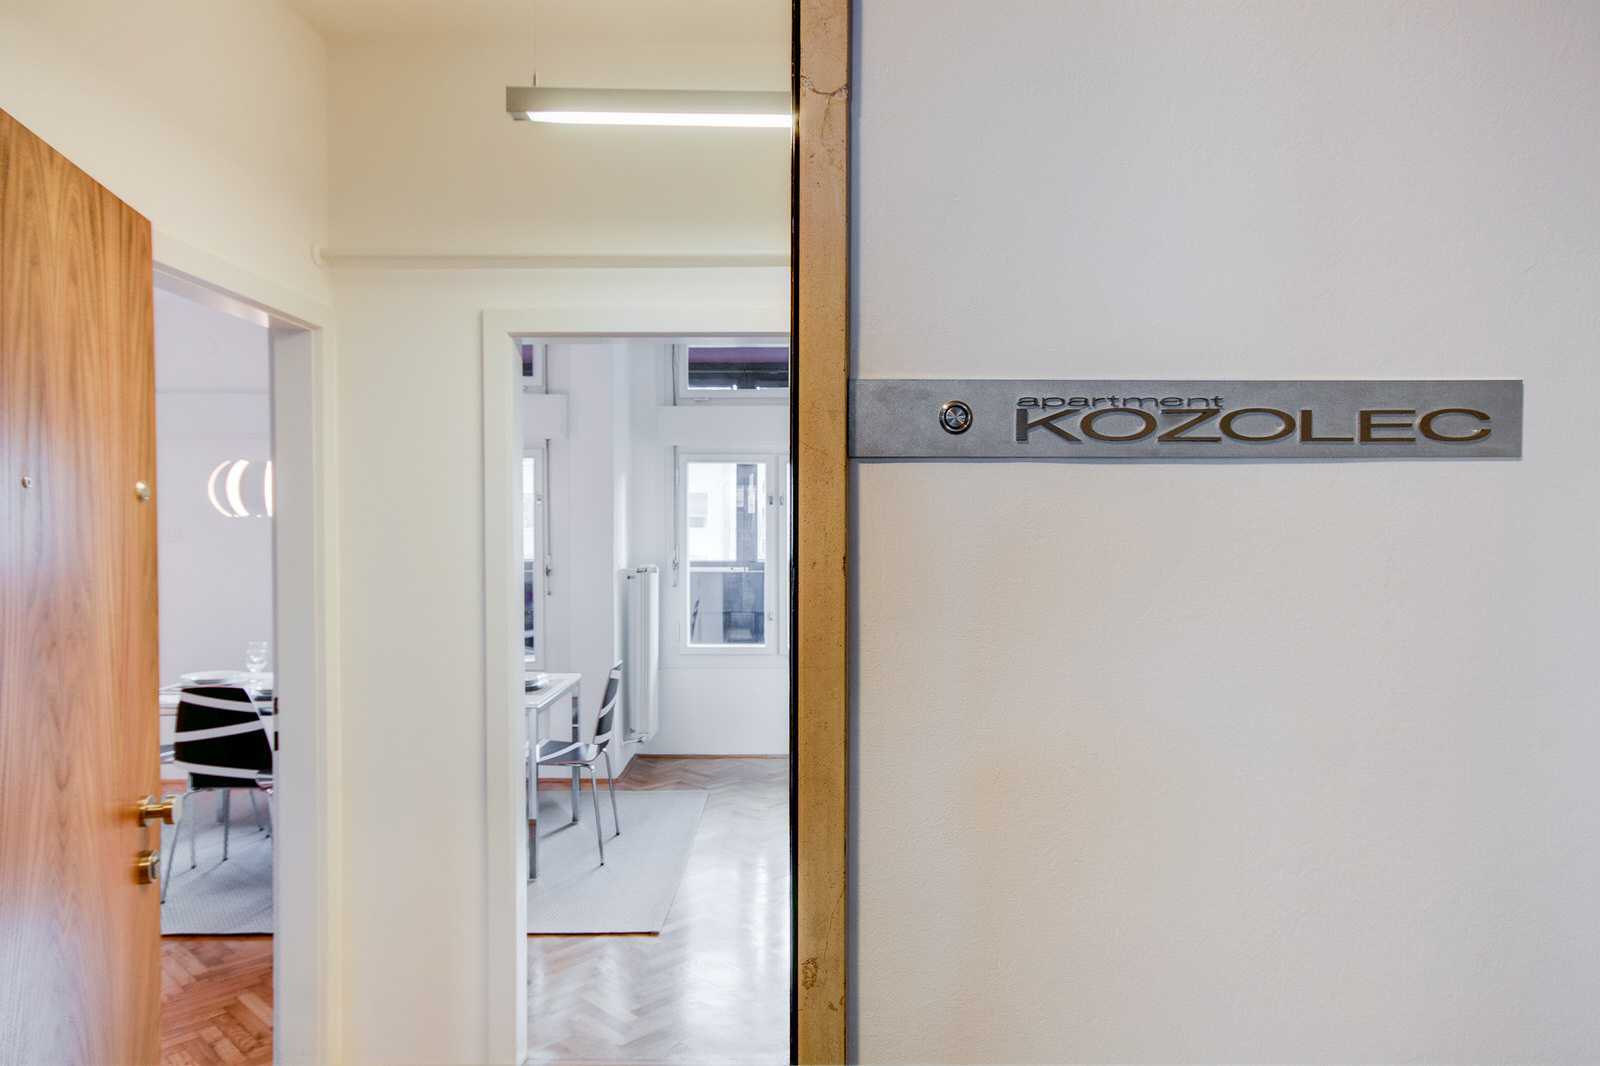 This 2-bedroom apartment rental is located on the second floor of a building with a lift, behind the door with Kozolec plate.